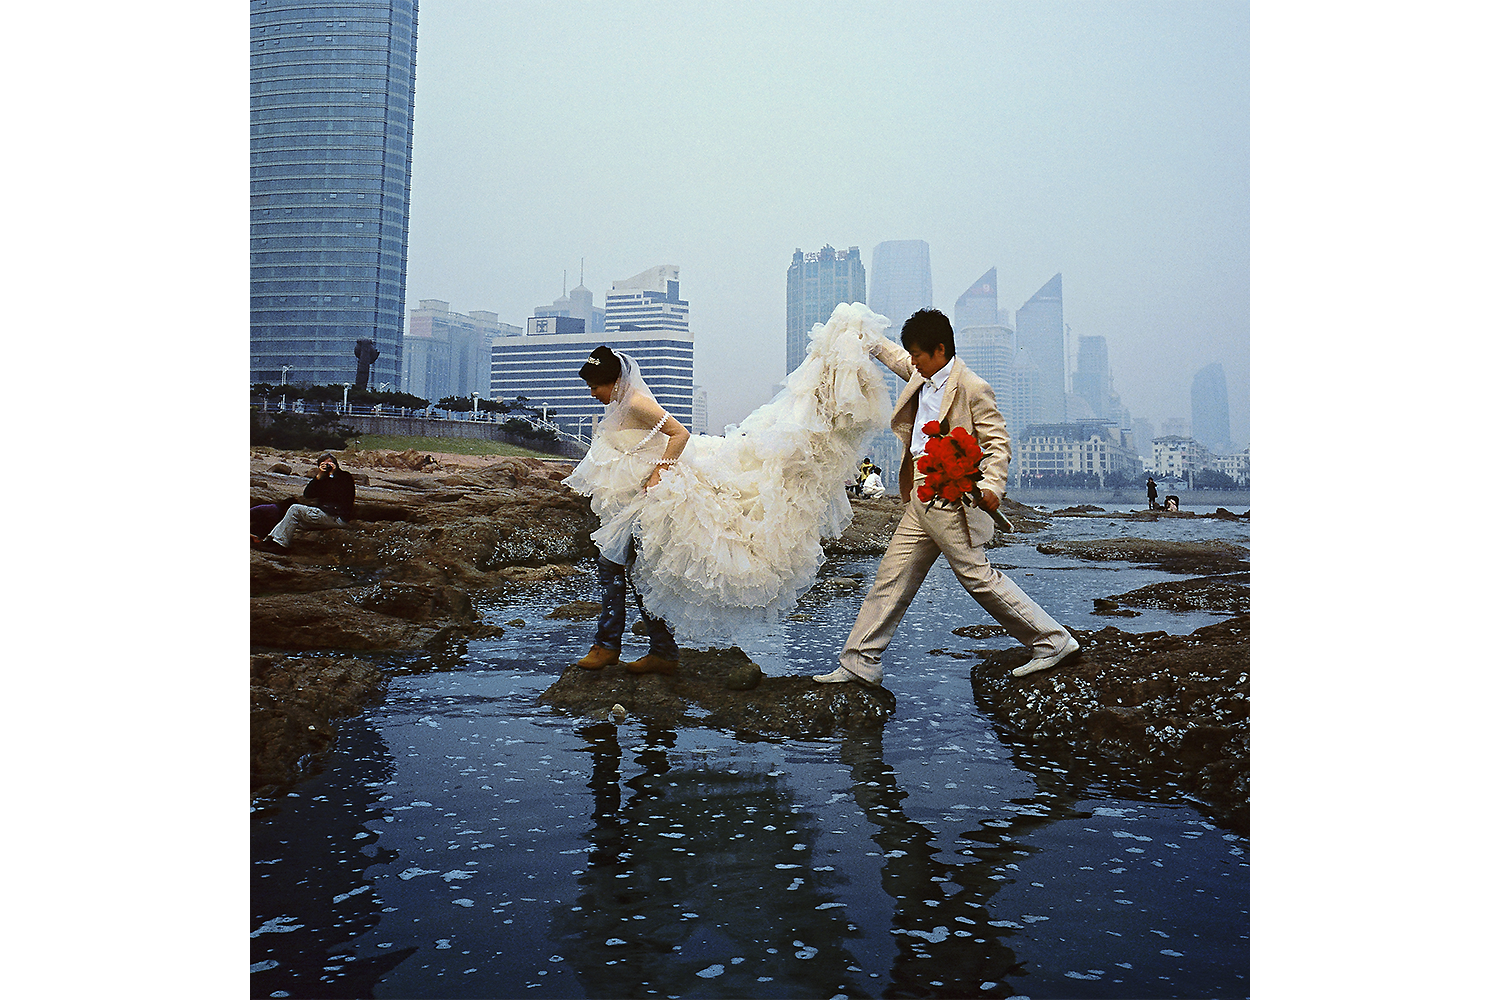 A couple dressed in wedding clothes tries to stay dry after a phots session in Qingdao. Photo by Chris Cherry @christophcherry